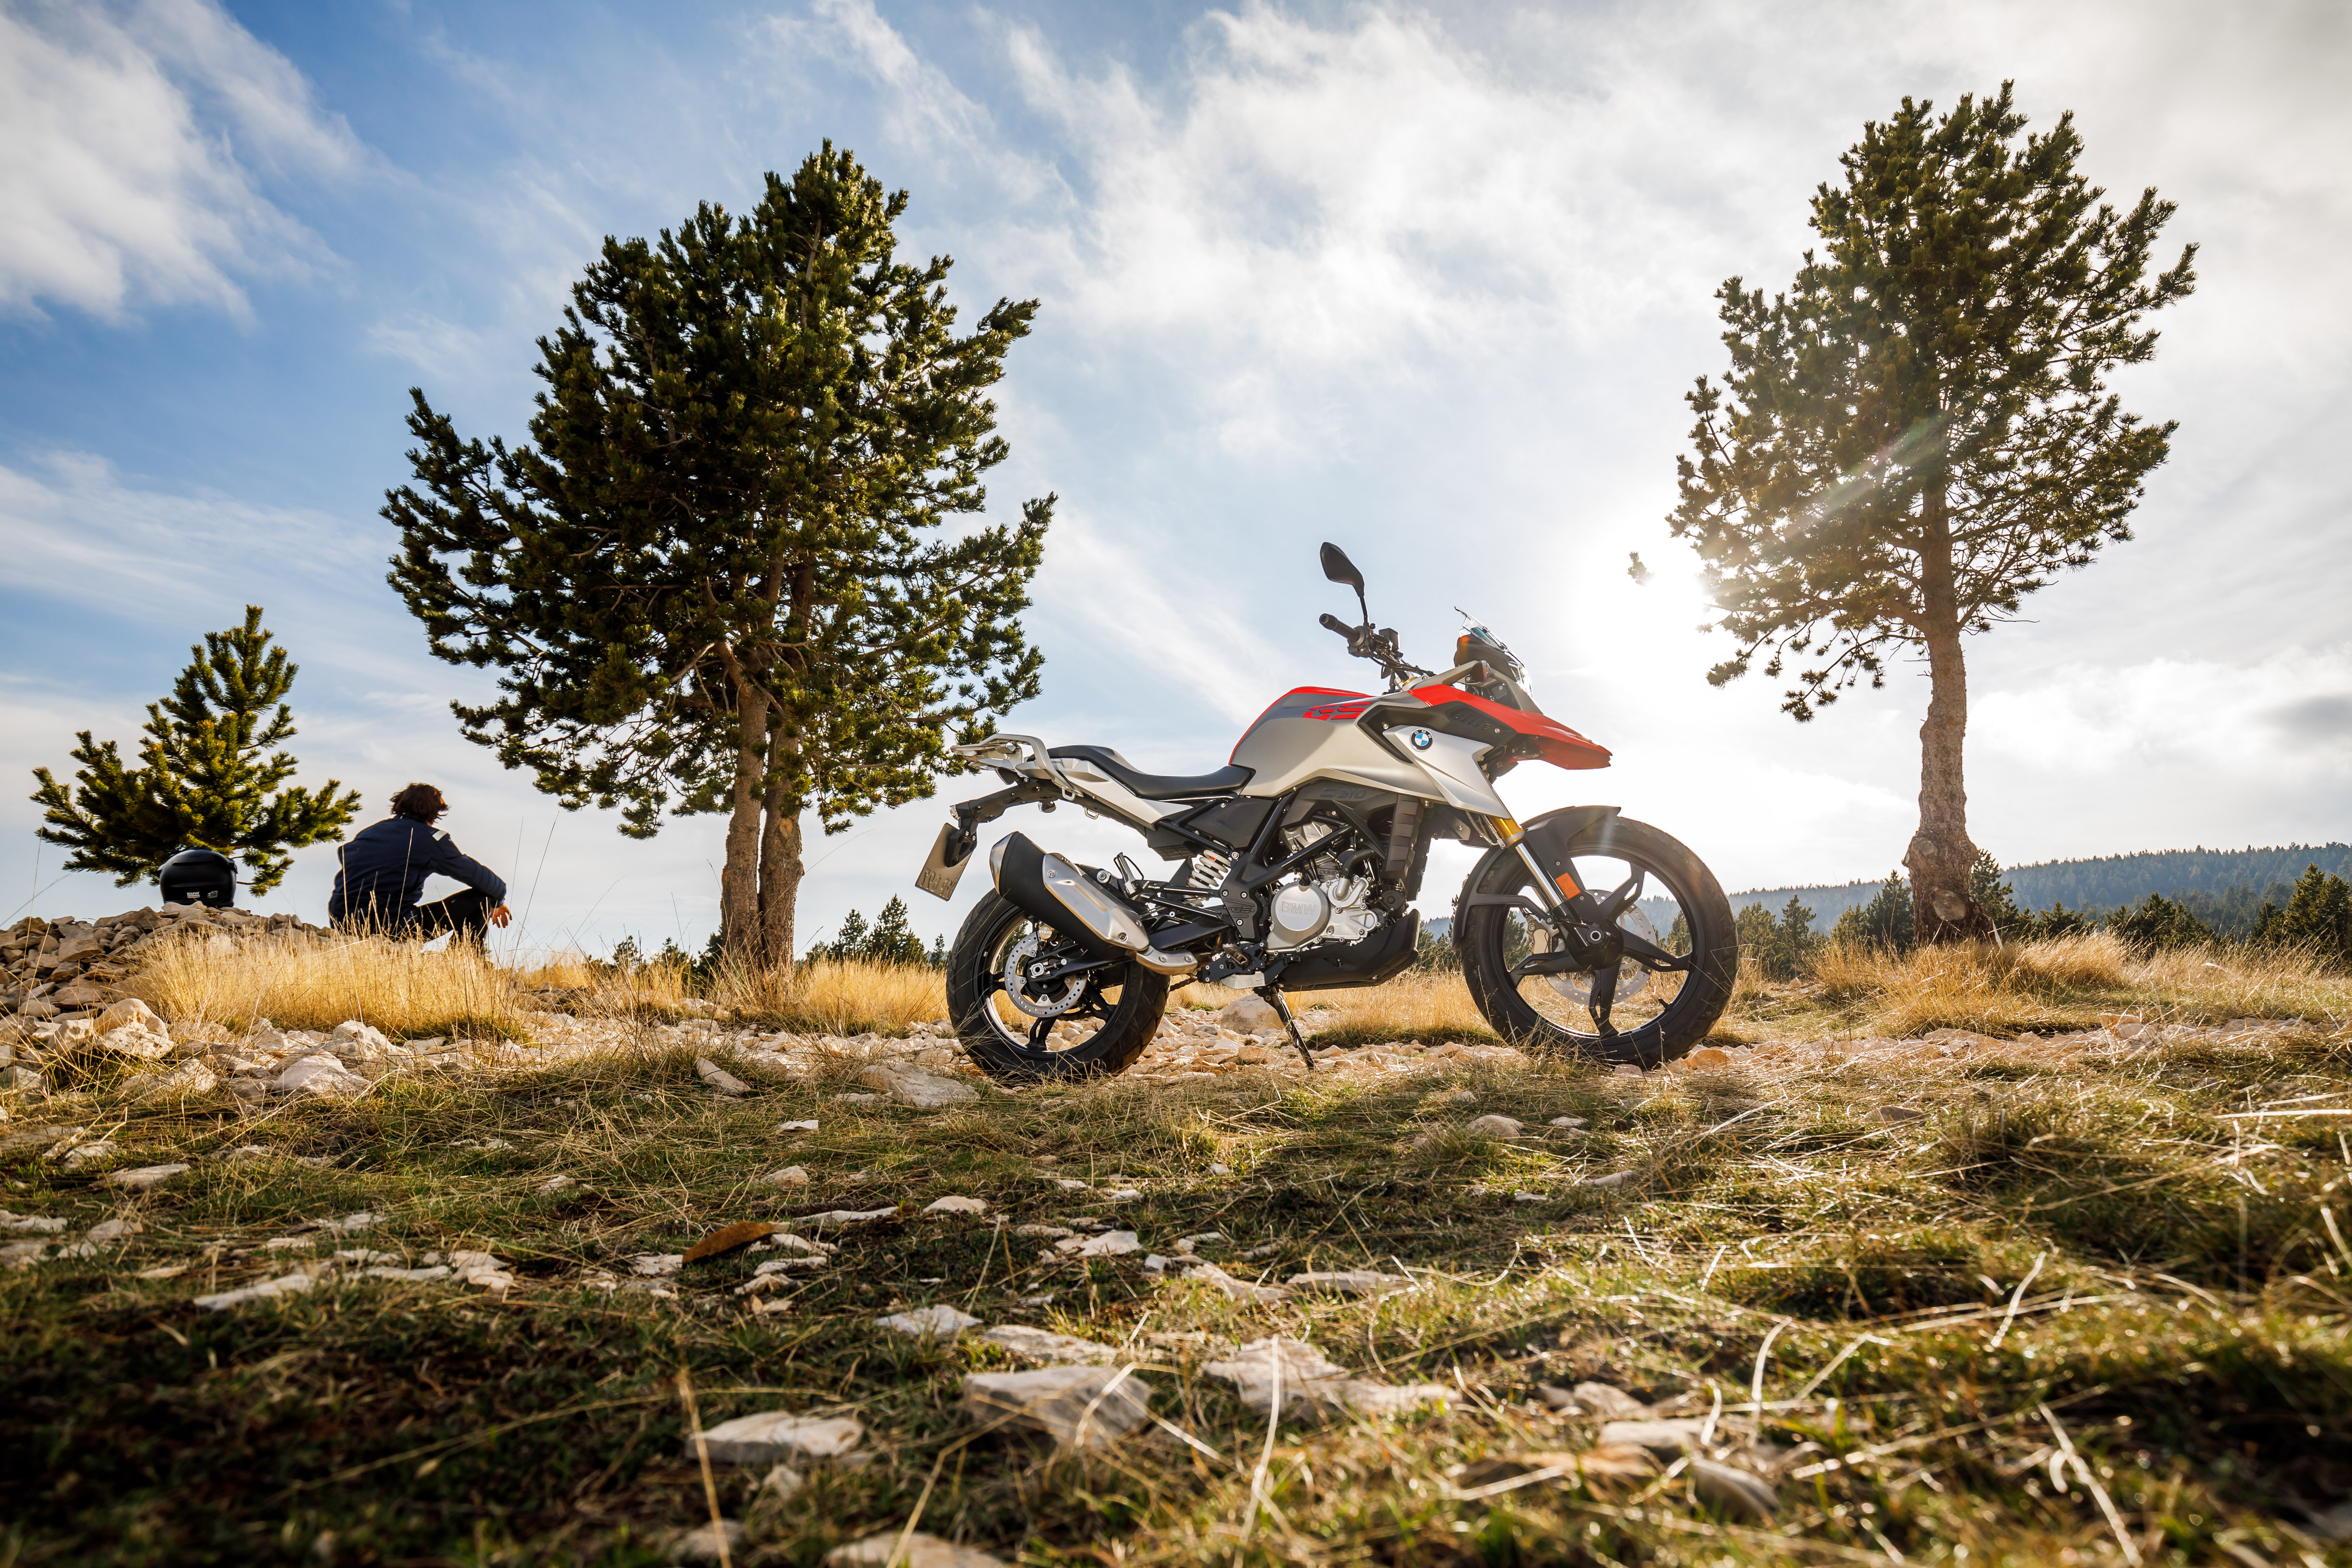 Introducing the new BMW G 310 GS – confirmed MRLP and release date.